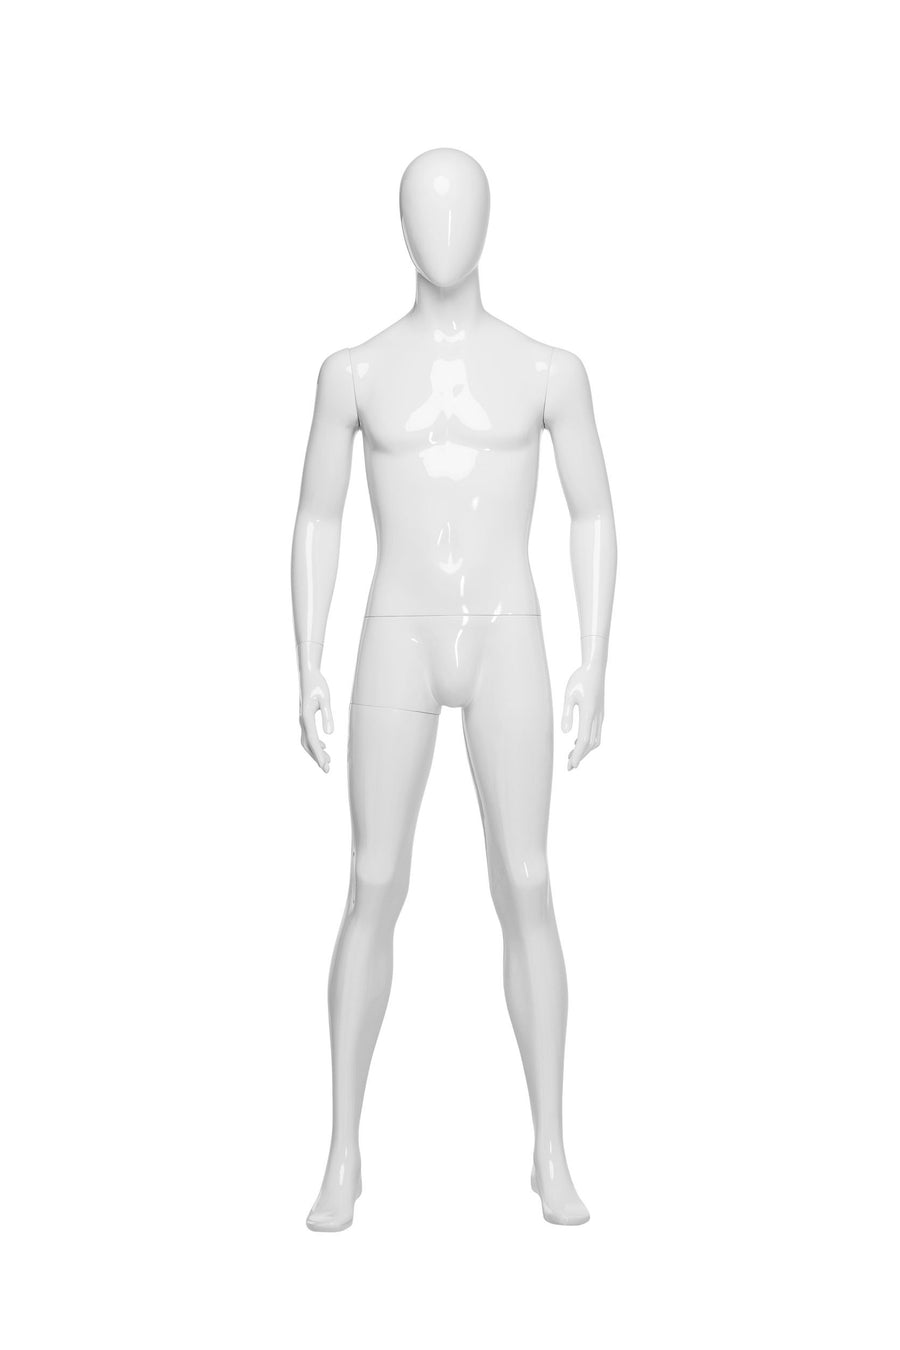 genesis pure white boutique male mannequin with blank face and arms at sides and legs parted